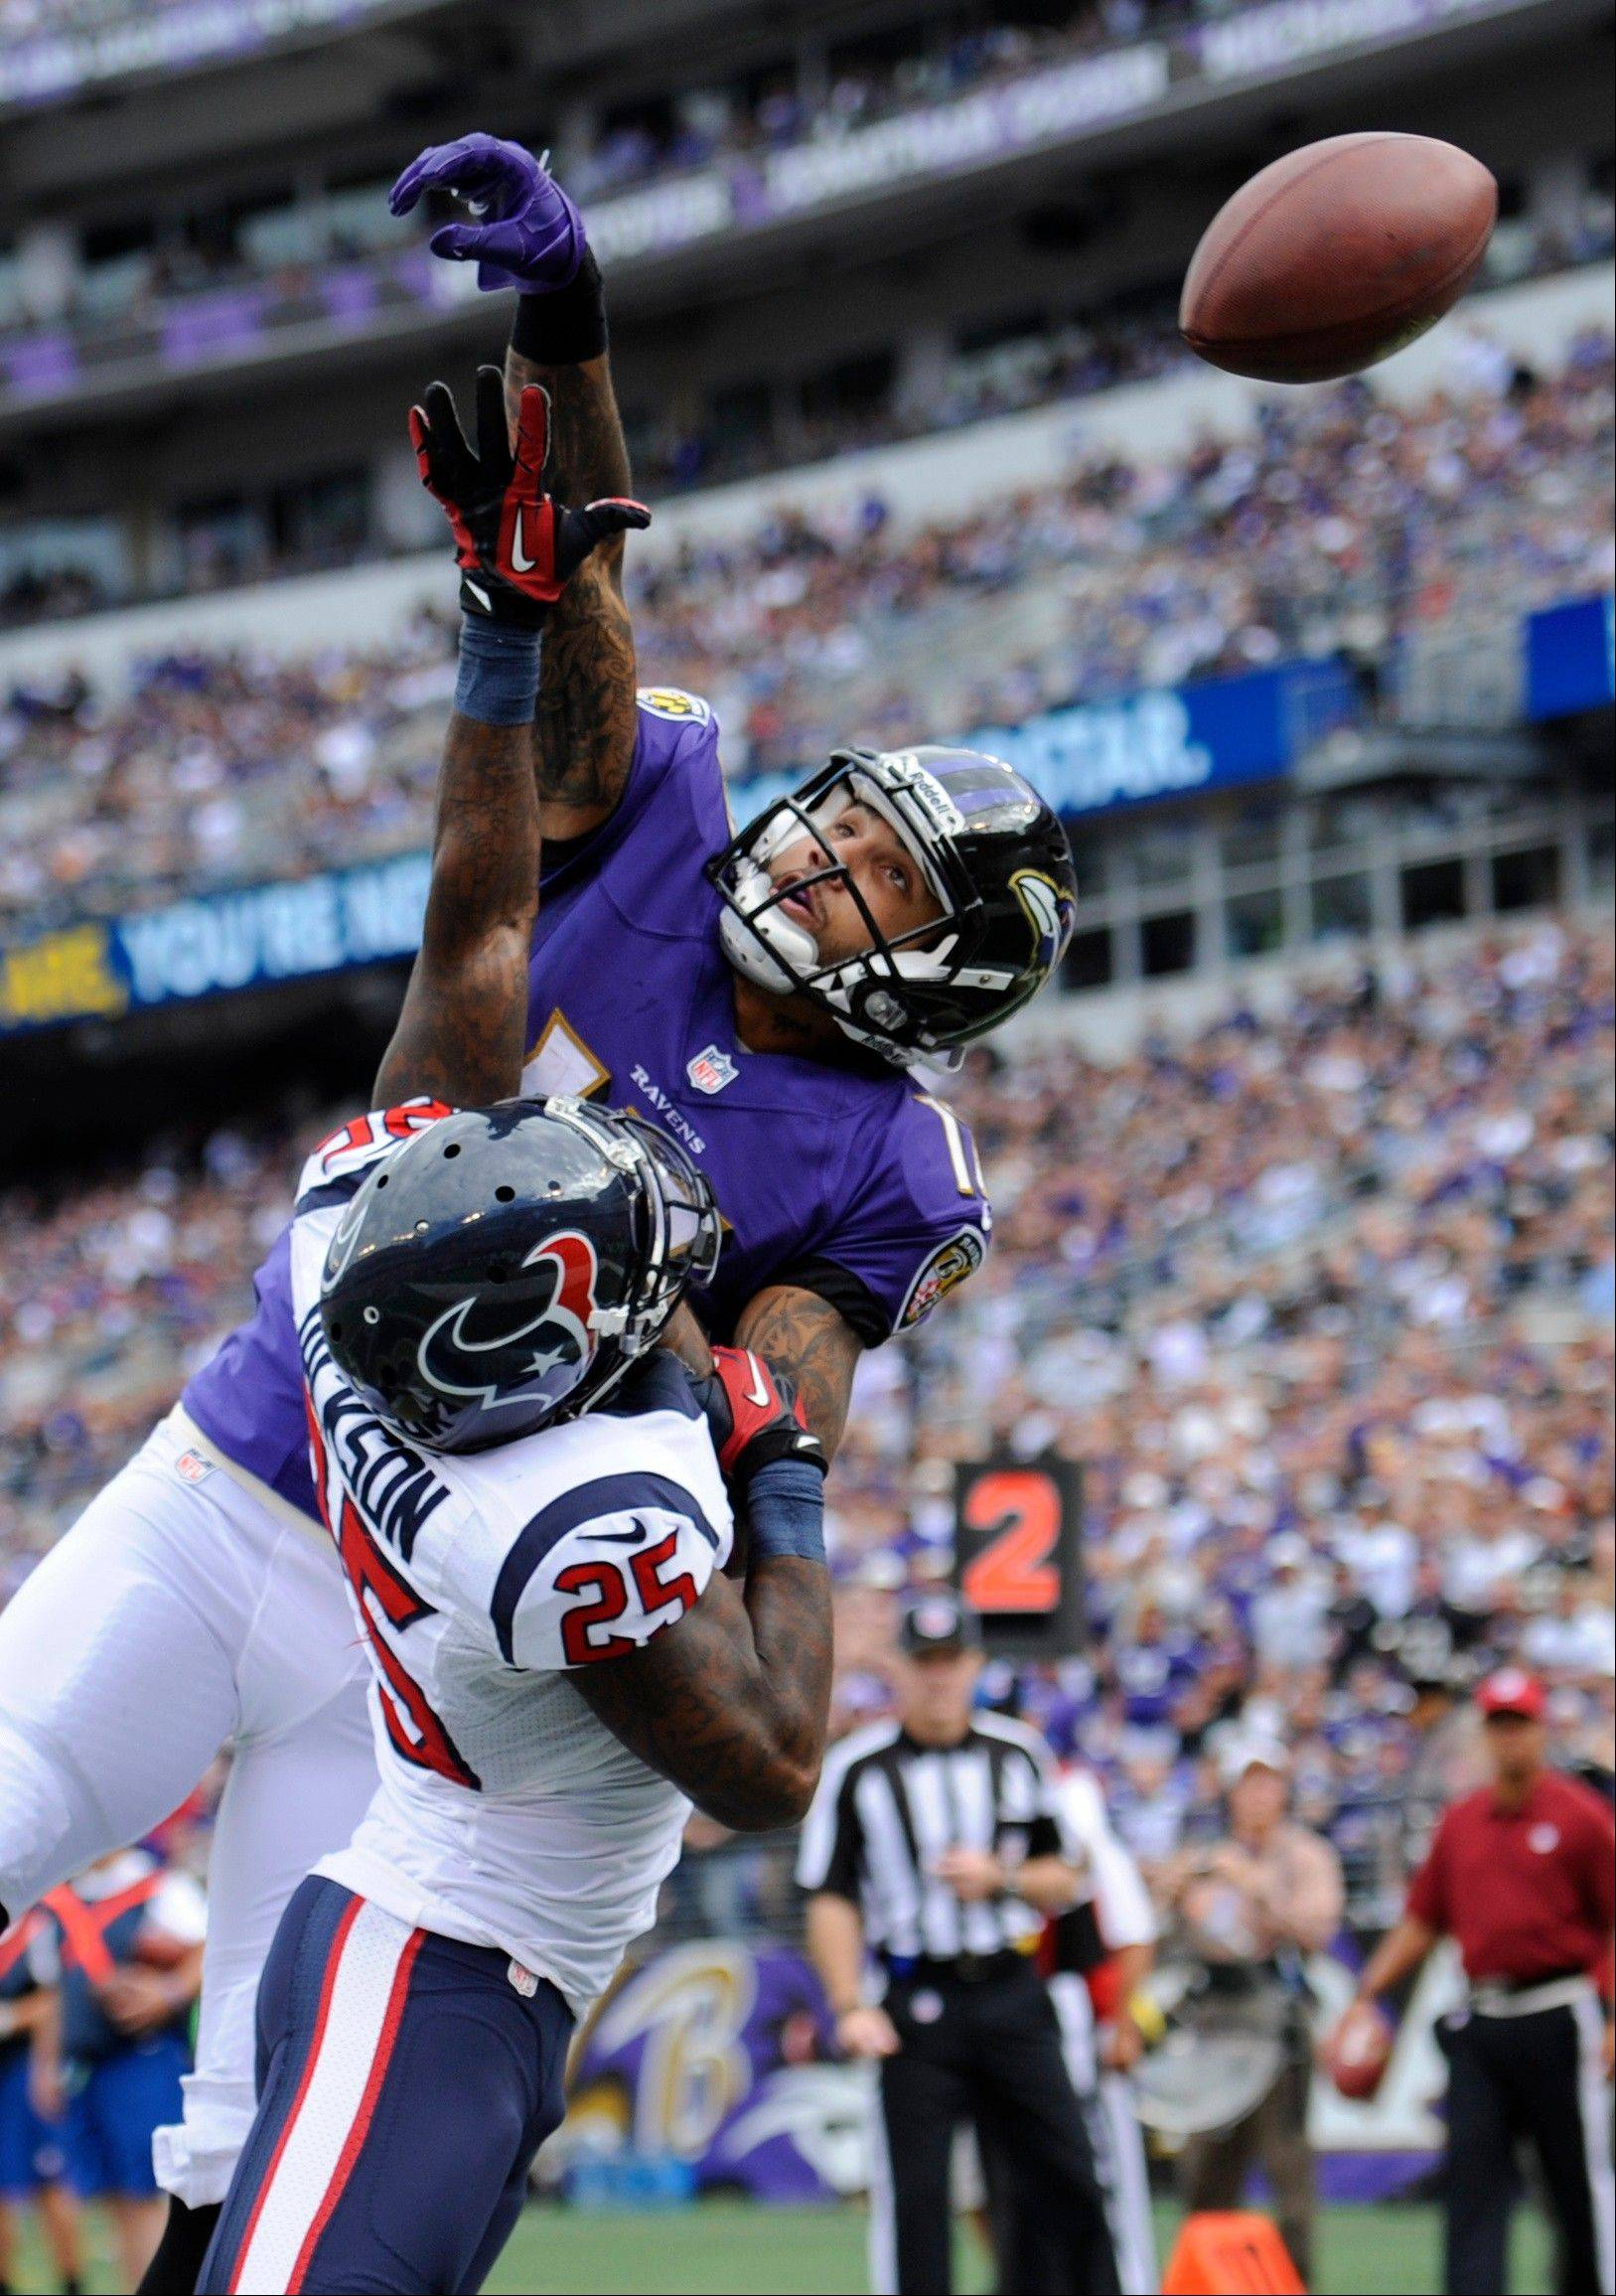 Houston Texans cornerback Kareem Jackson, bottom, breaks up a pass attempt to Baltimore Ravens wide receiver Tandon Doss in the second half of an NFL football game Sunday, Sept. 22, 2013, in Baltimore. Houston received a defensive pass interference call on the play.